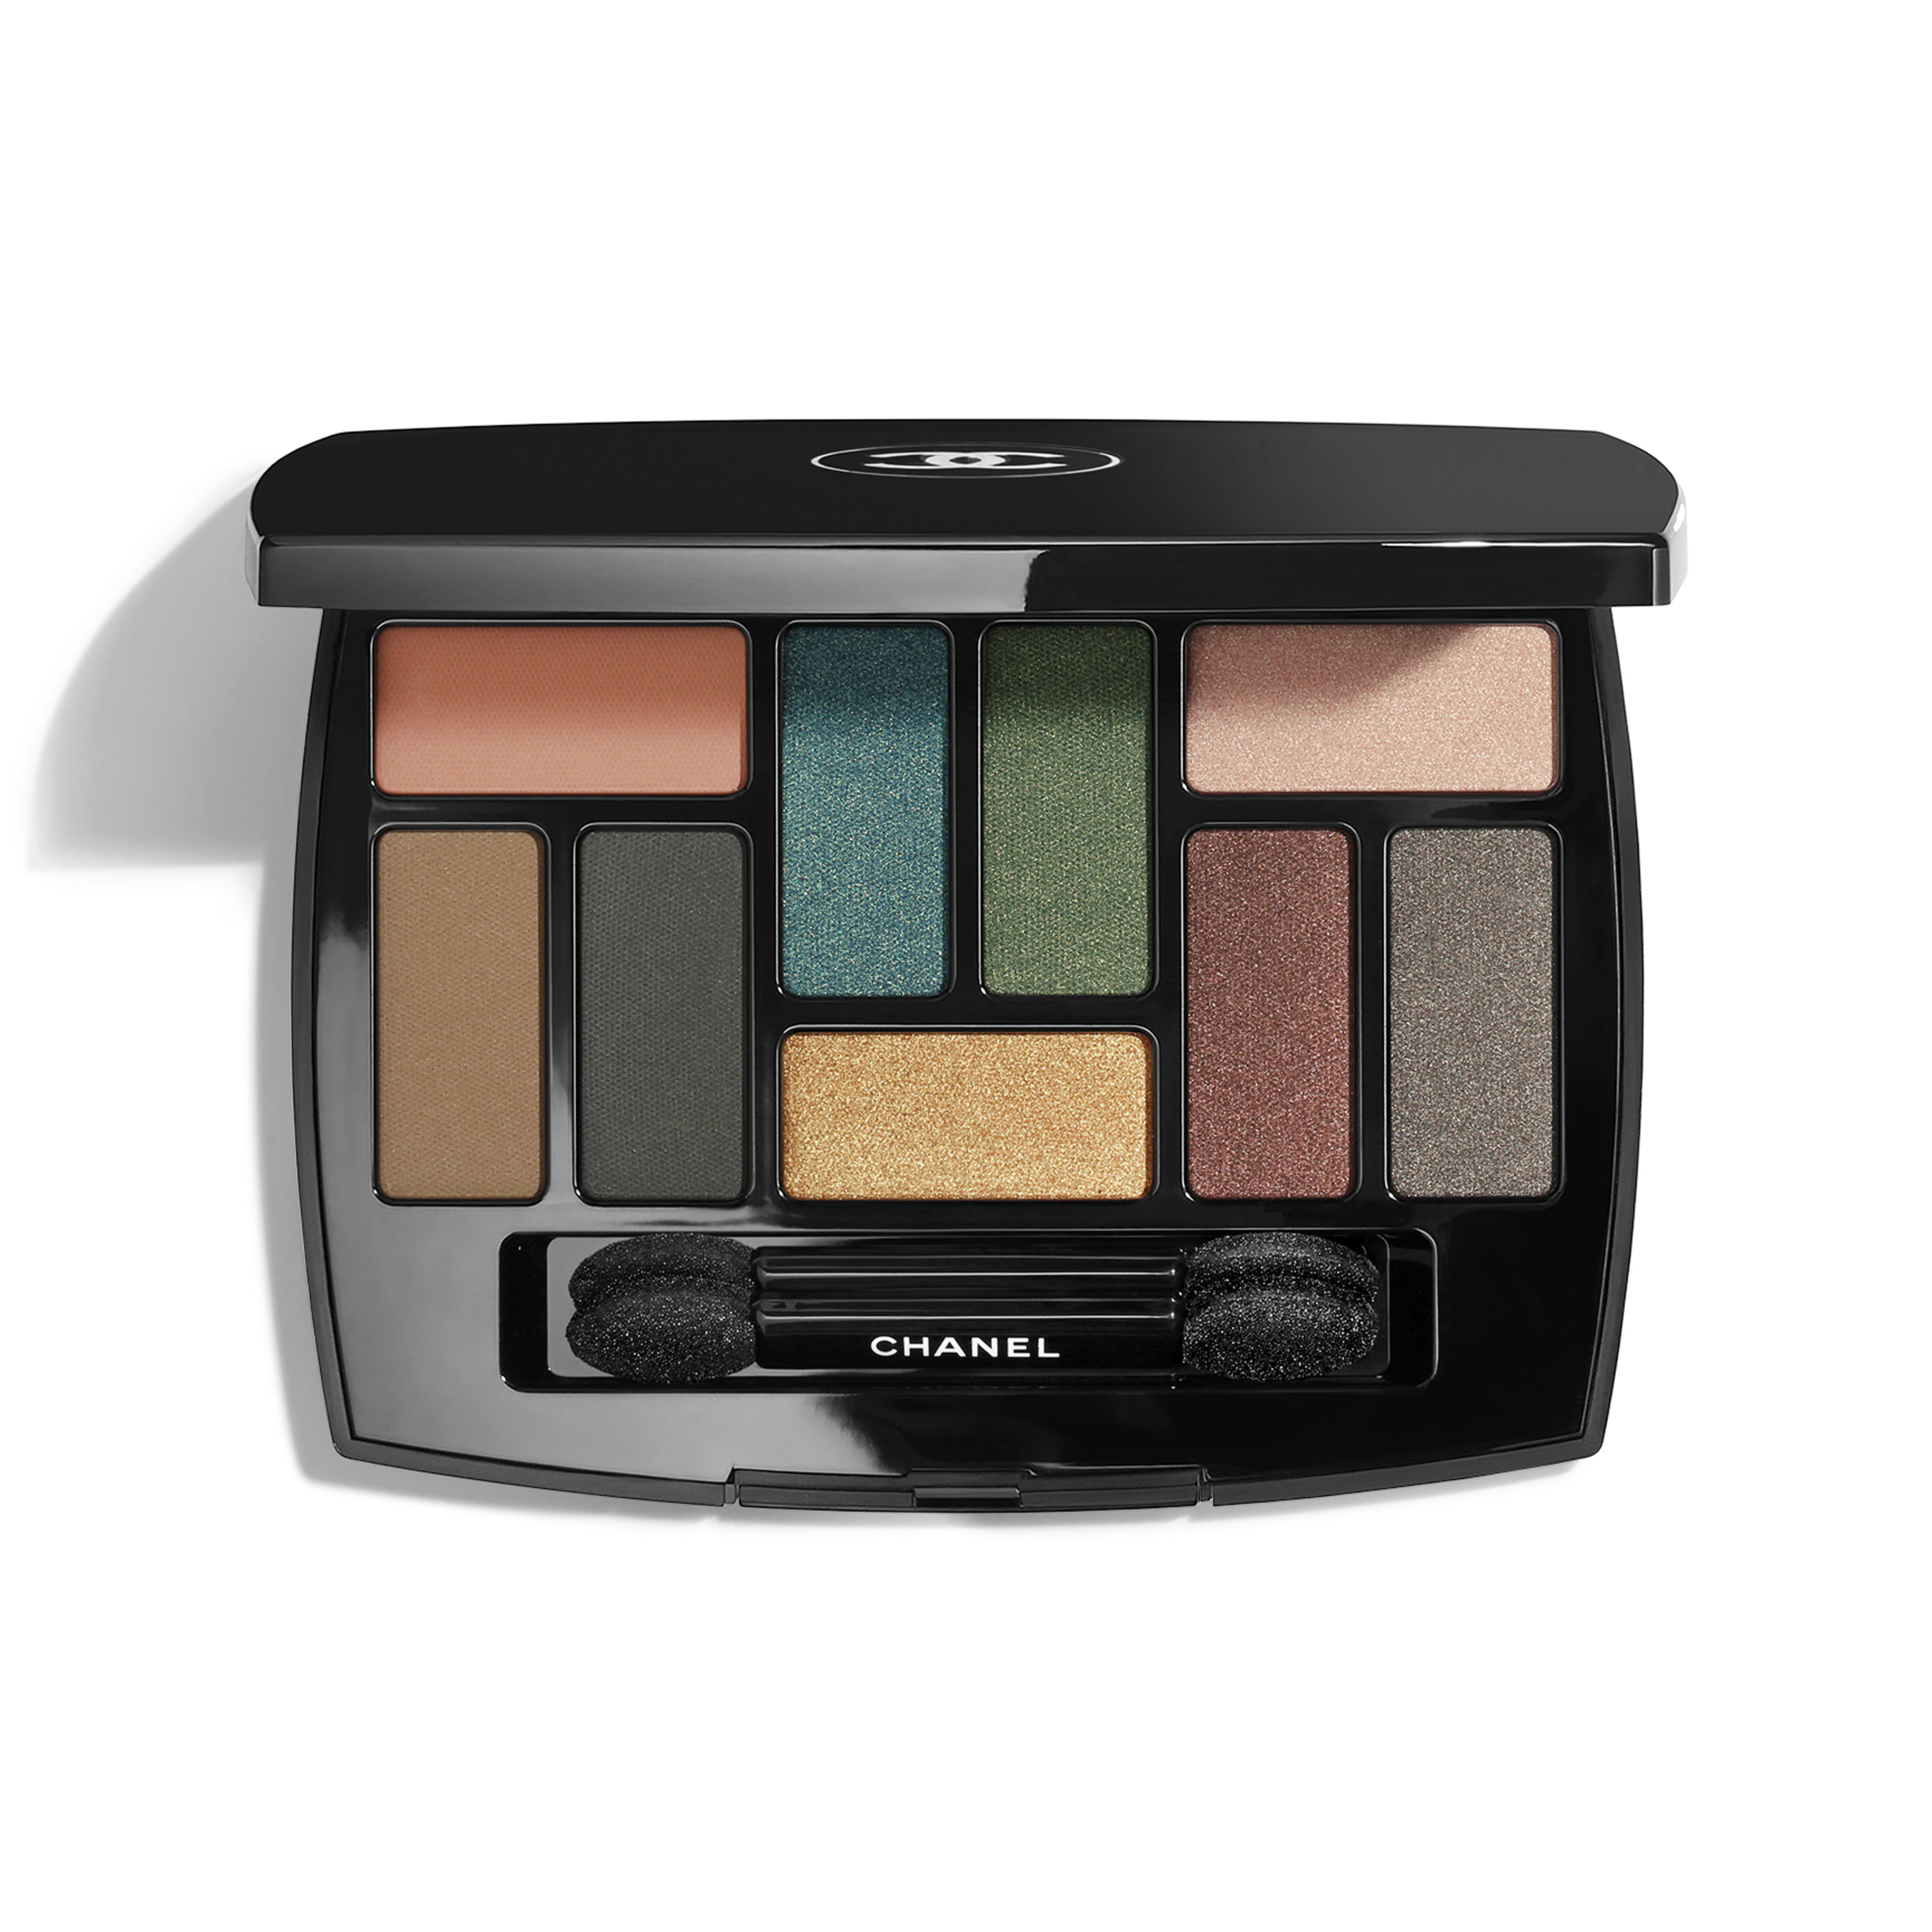 LES 9 OMBRES - makeup - 0.22OZ. -                                                            default view - see full sized version